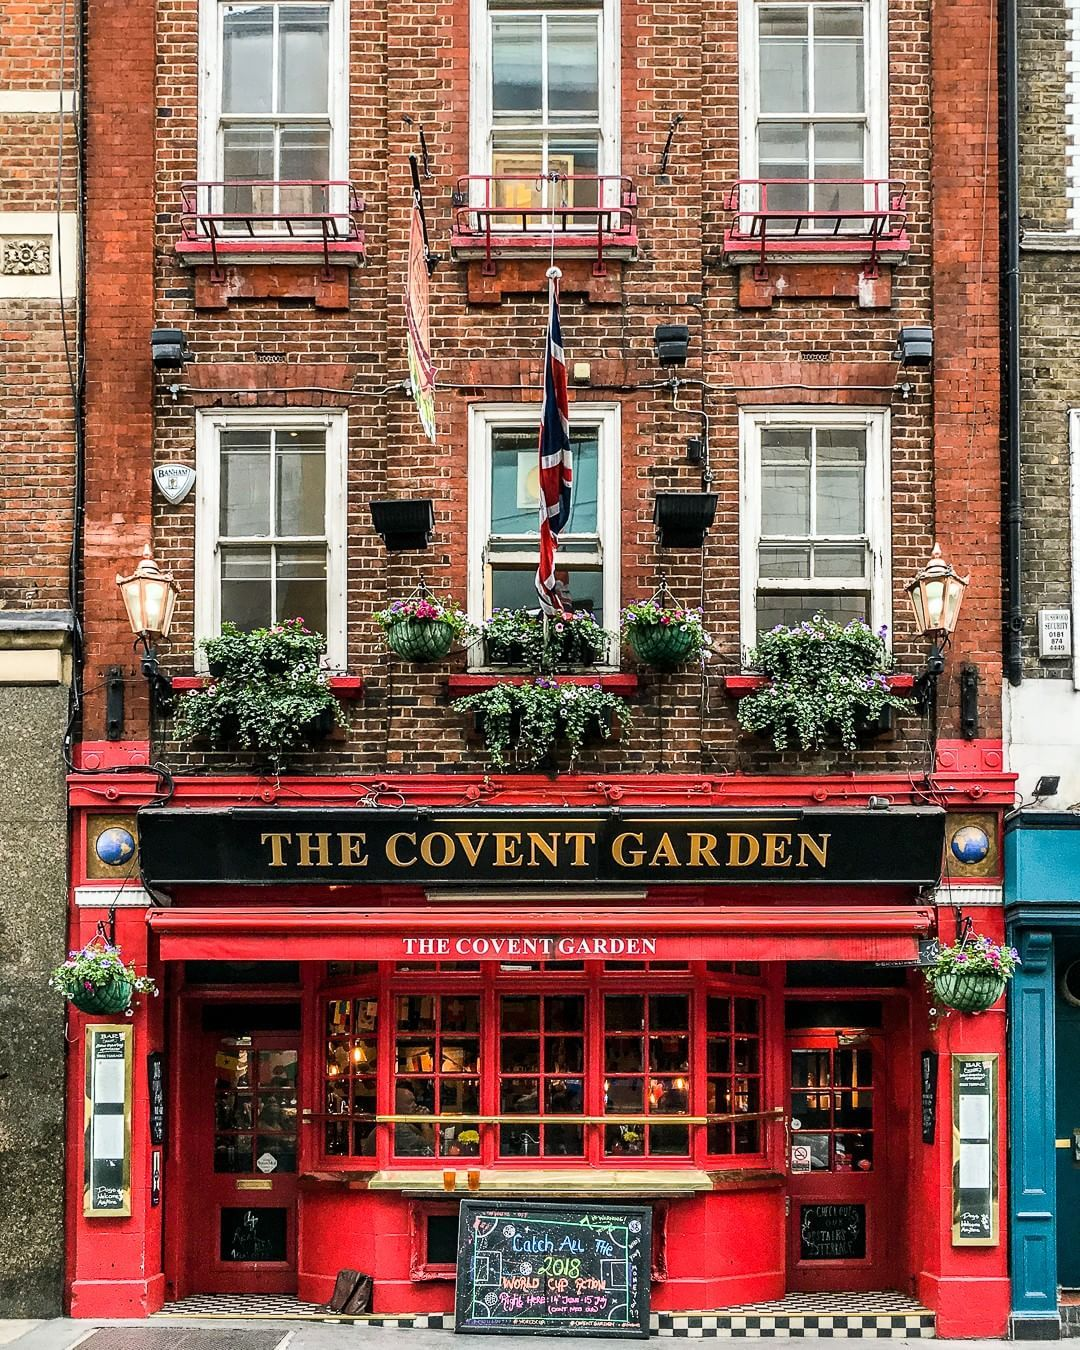 London Pubs: The Covent Garden Pub Is A Great Pub In London's Covent